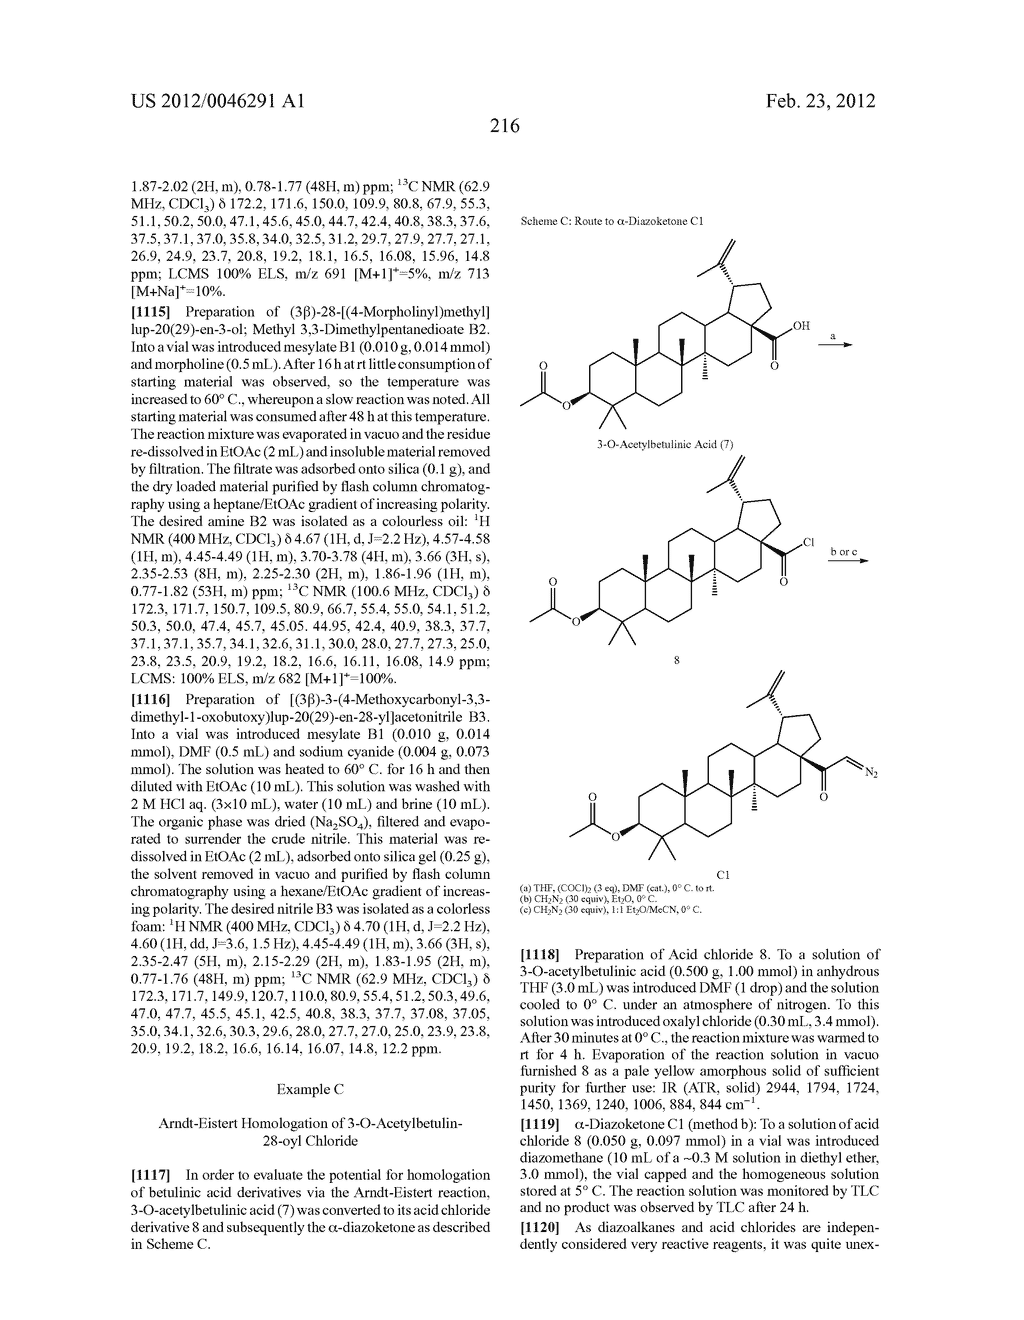 Extended Triterpene Derivatives - diagram, schematic, and image 216